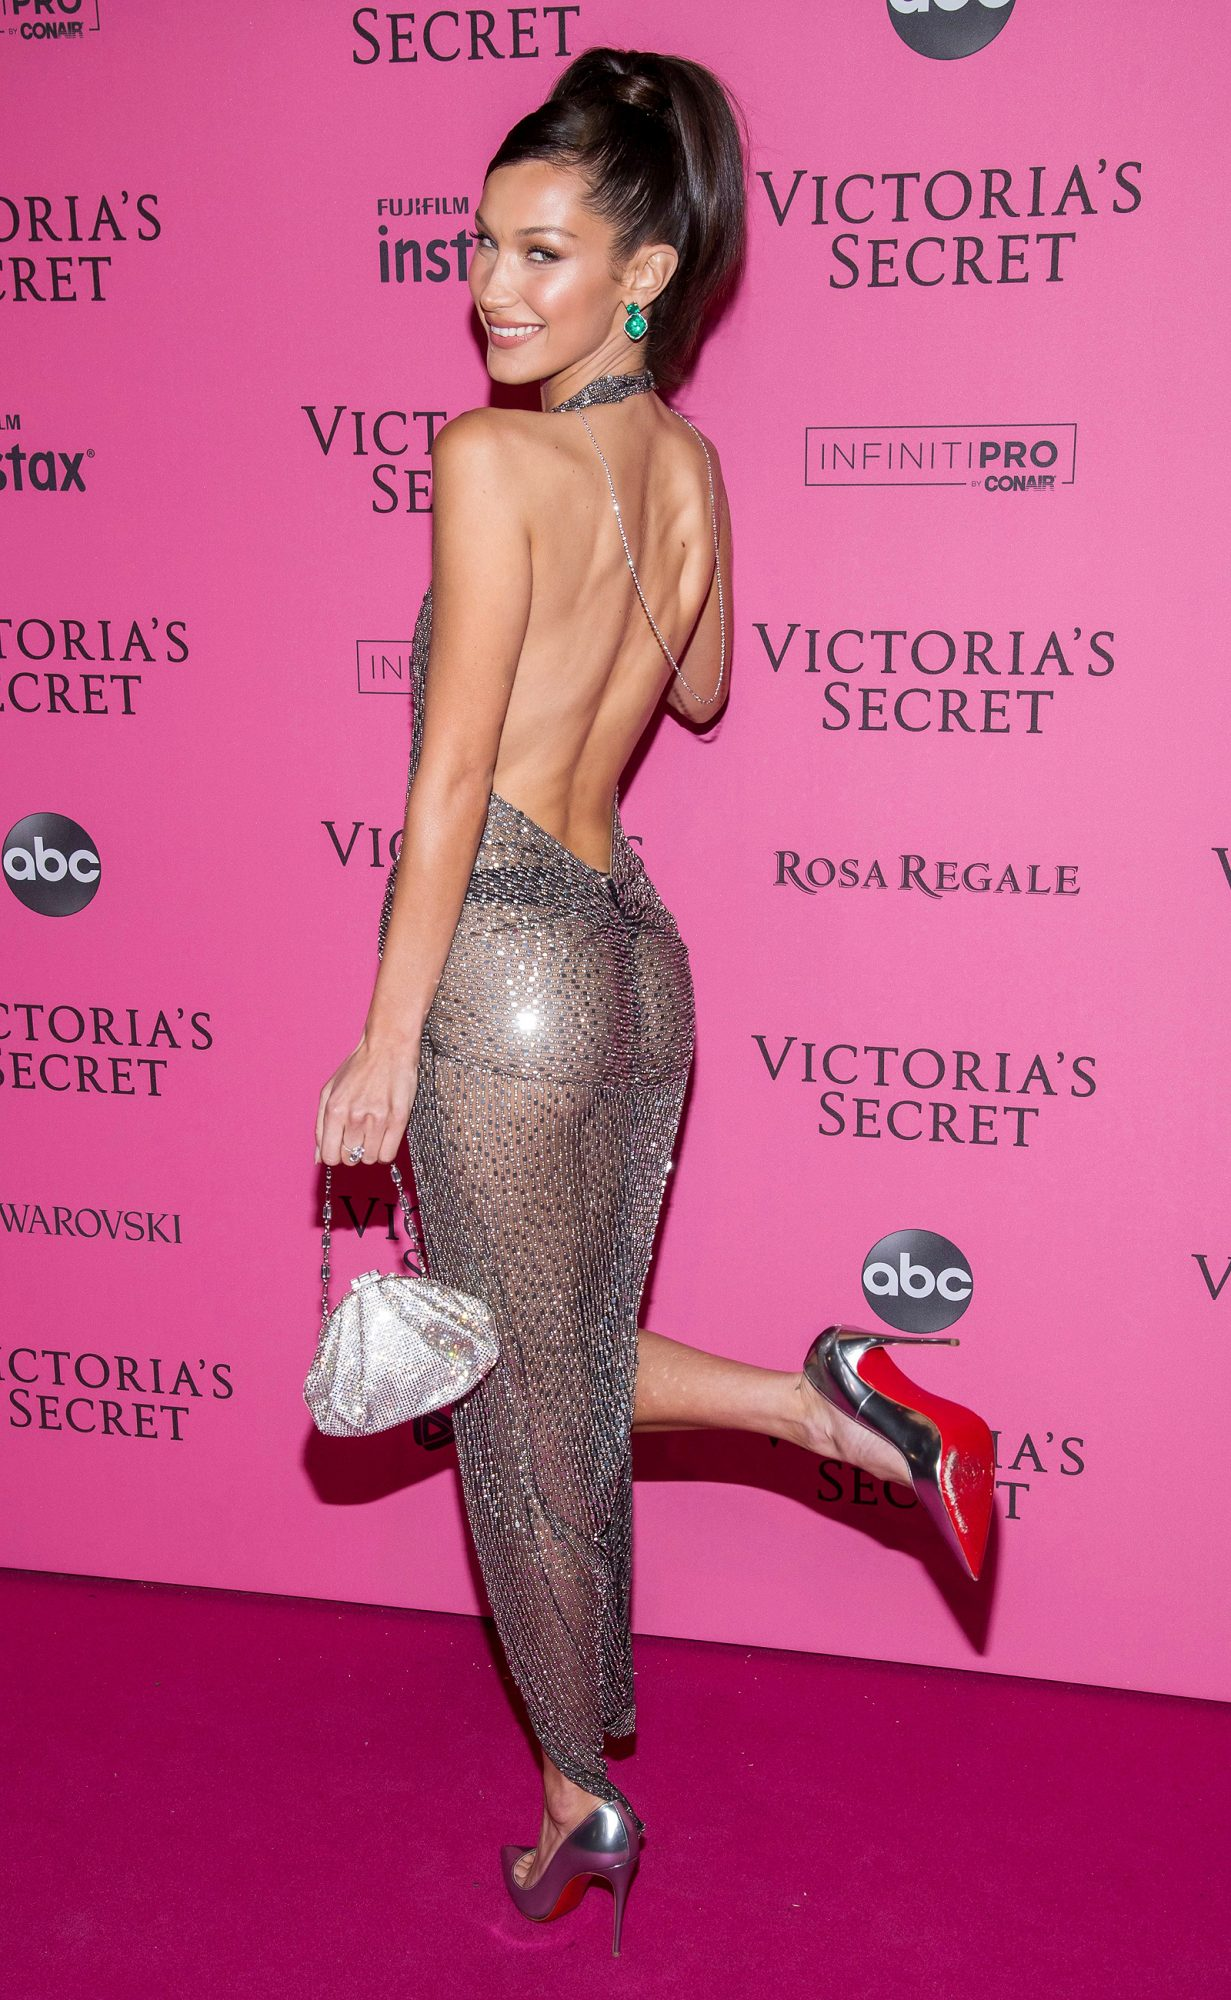 2018 Victoria's Secret Fashion Show - After Party Arrivals, New York, USA - 08 Nov 2018